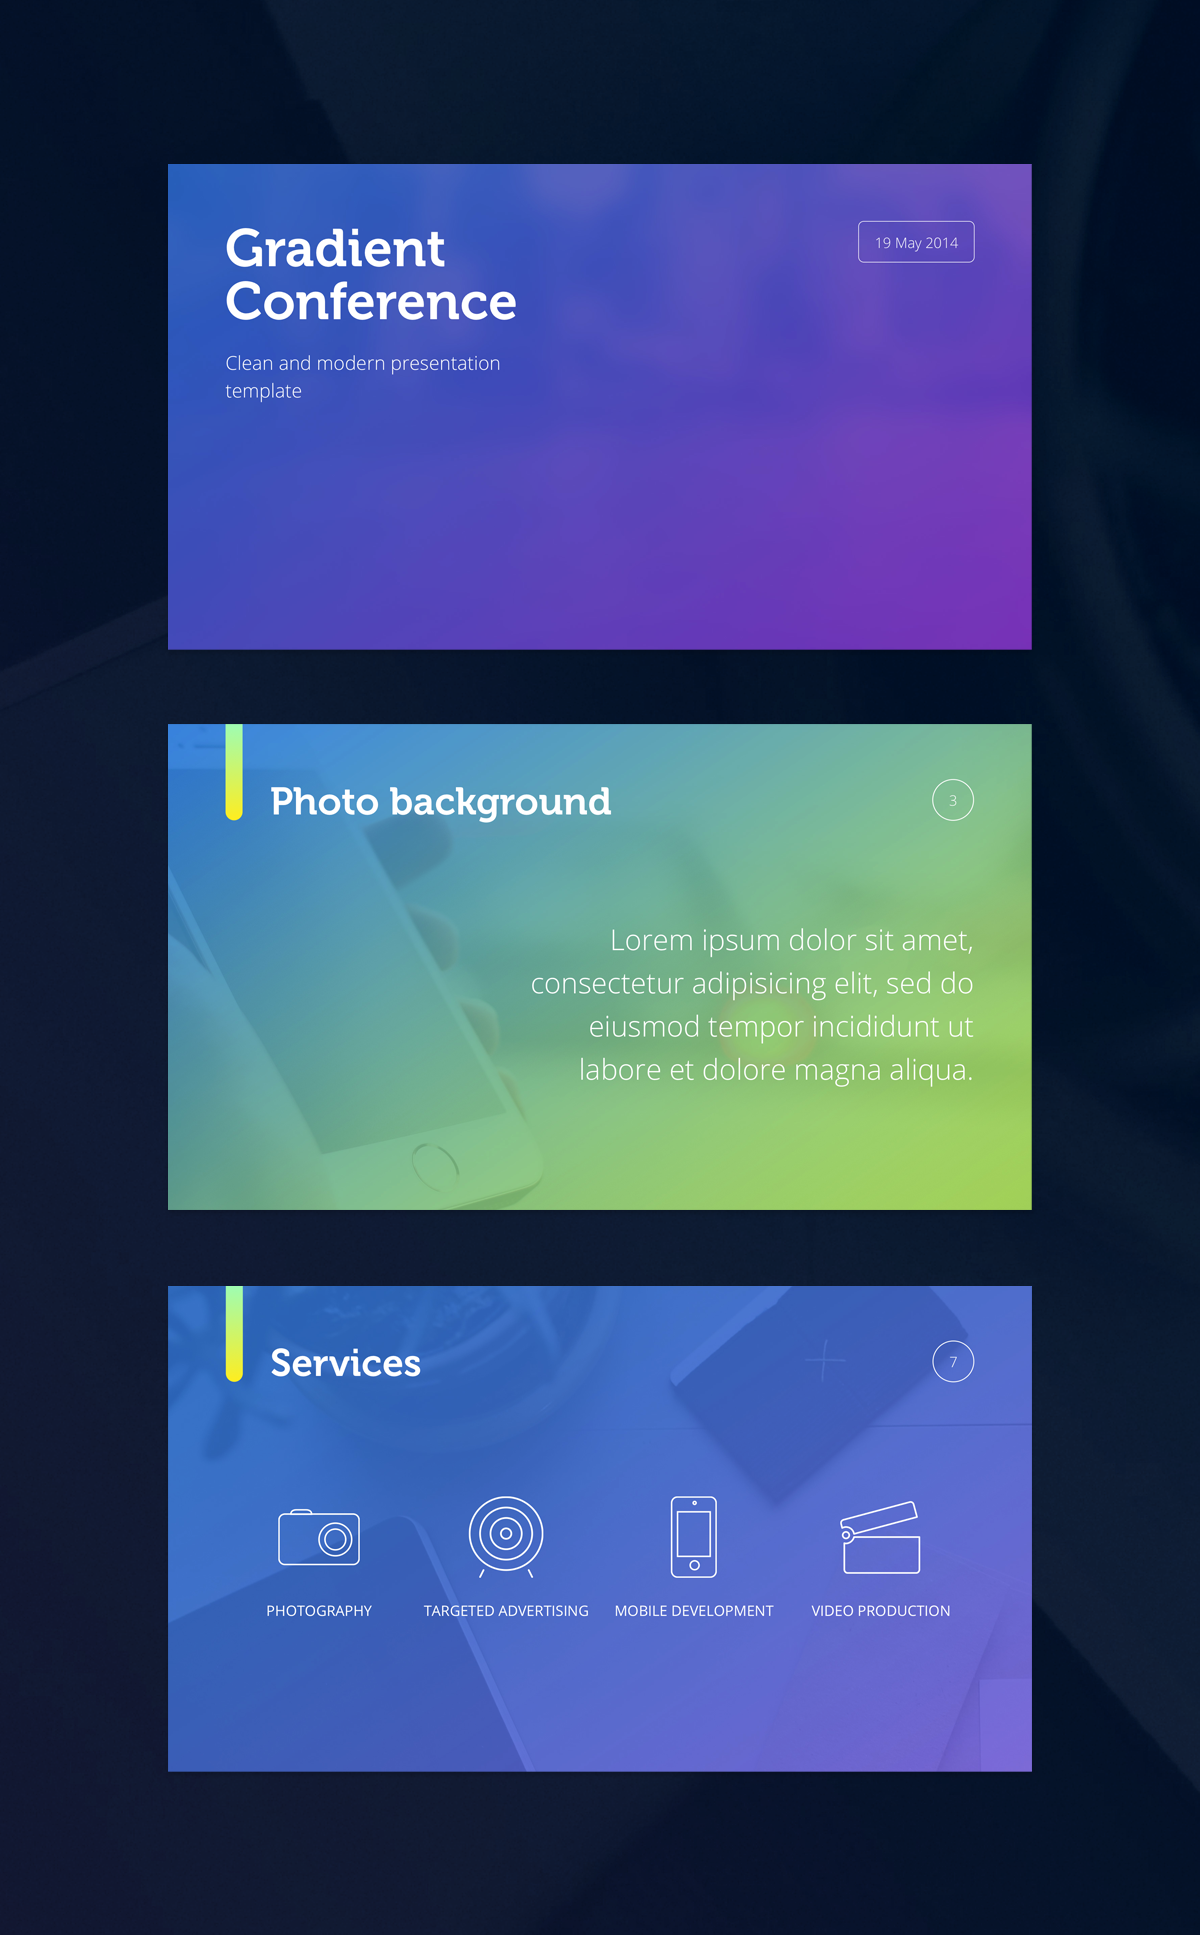 dribbble - gradient-presentation-template-large-viewerigon, Presentation templates